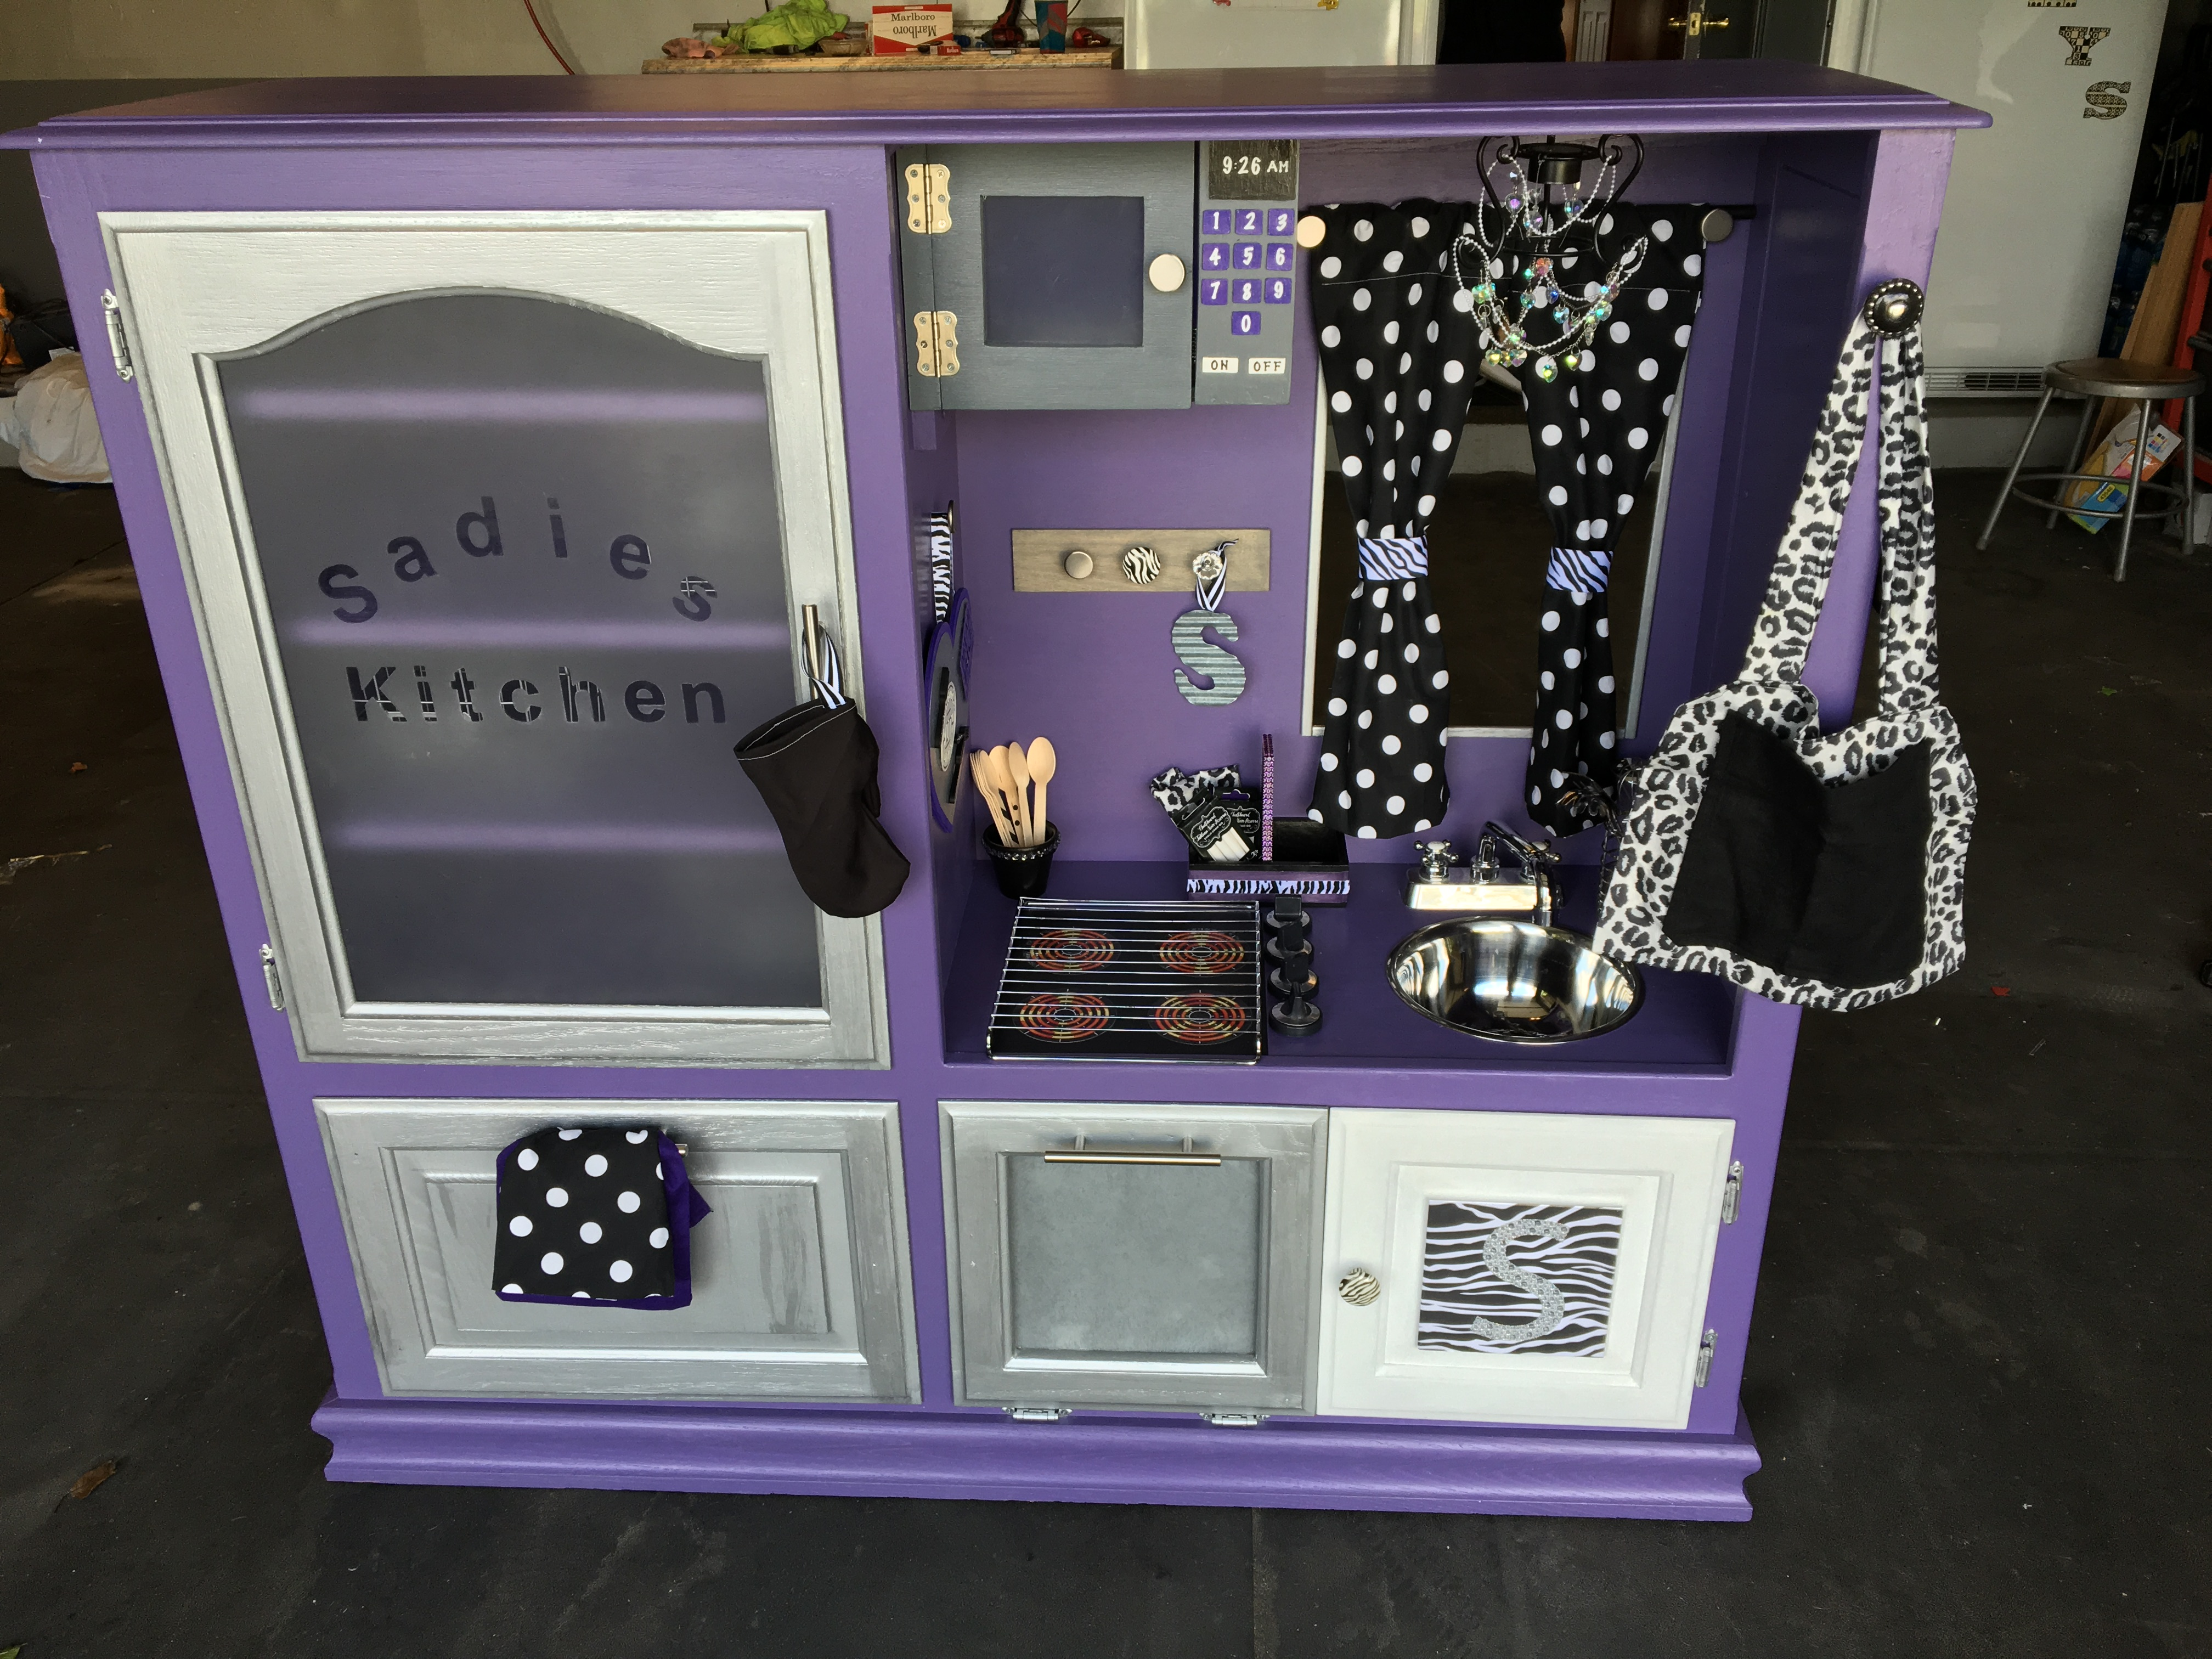 Goodwill Utlimate Upcycling Runner-up - Taylor C. Play Kitchen